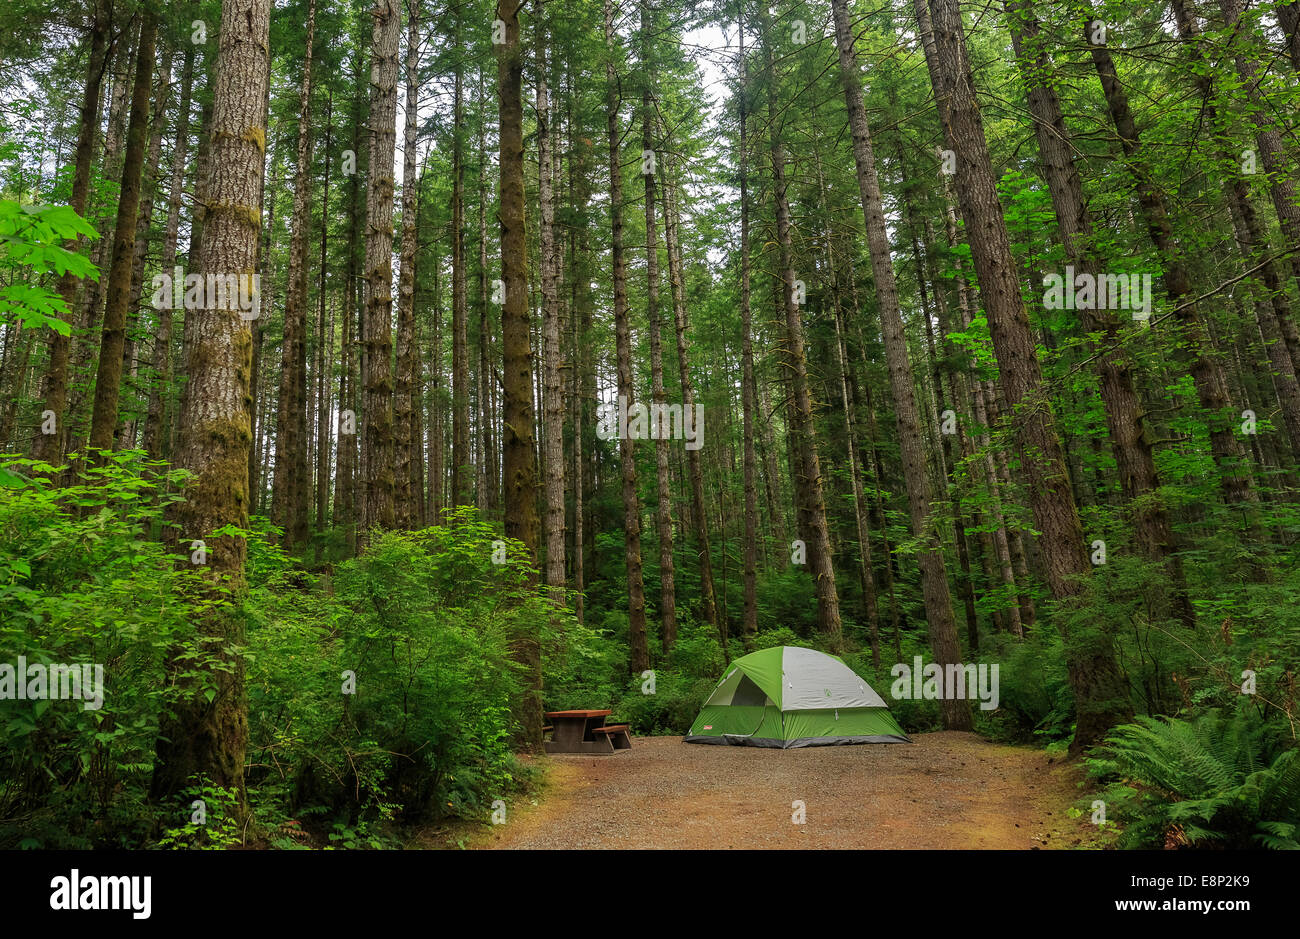 A pitched tent in a wooded c&site & A pitched tent in a wooded campsite Stock Photo Royalty Free ...